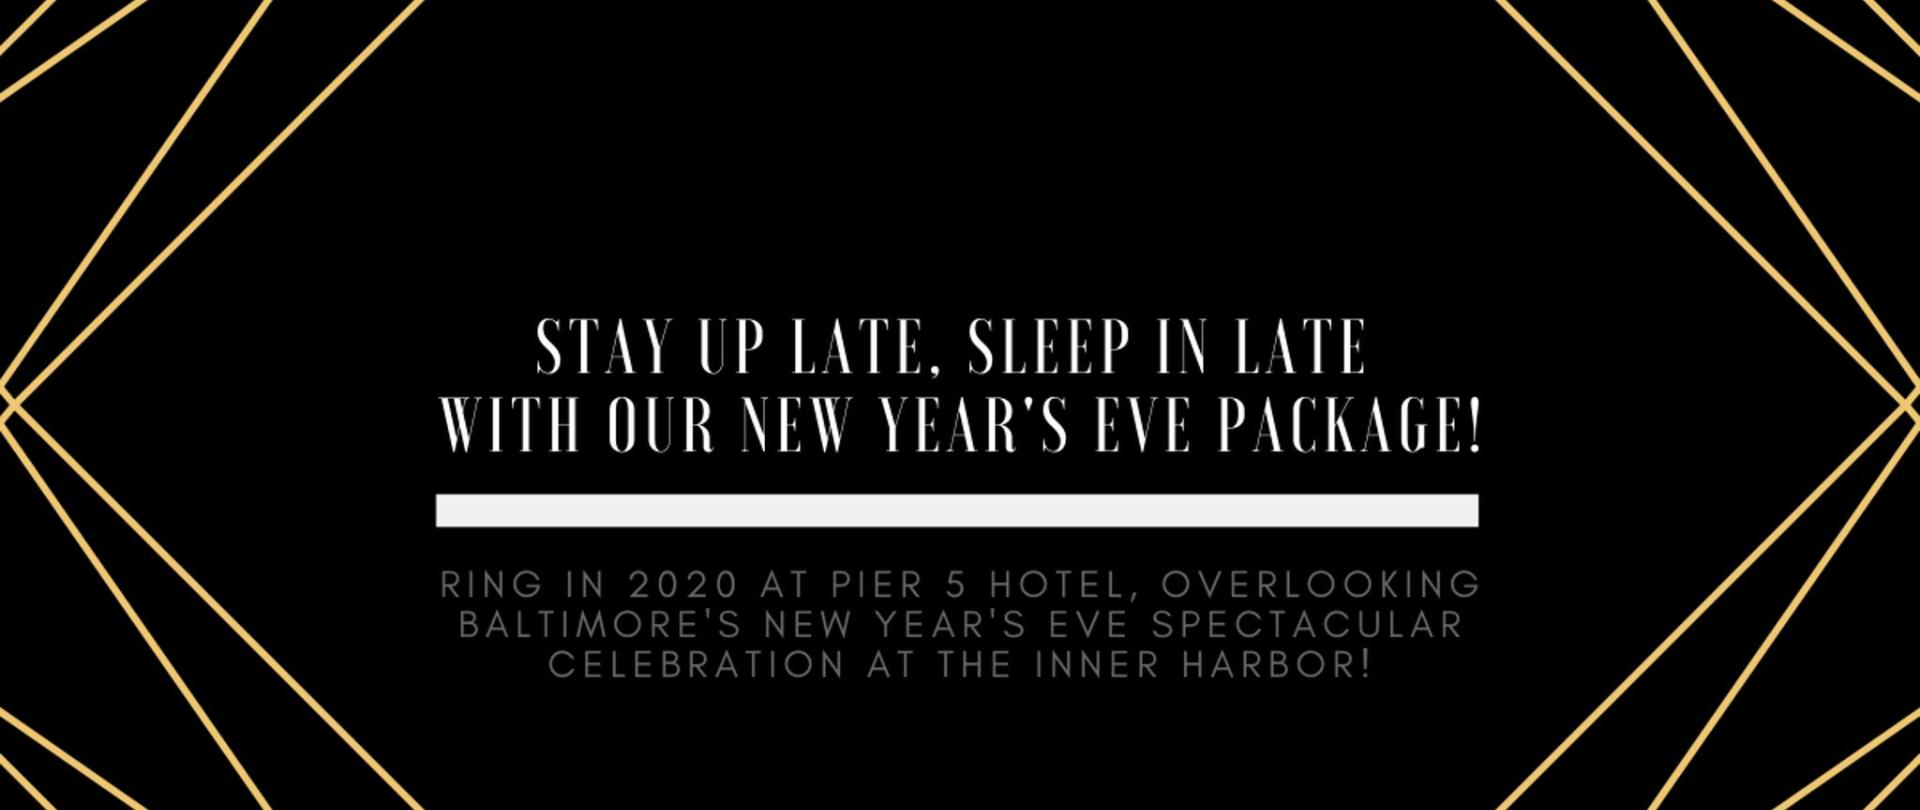 ring in 2020 at pier 5 hotel, overlooking baltimore's new year's eve spectacular celebration at the inner harbor! Stay up late, sleep in late! Enjoy a 2_00pm late checkout (2).png